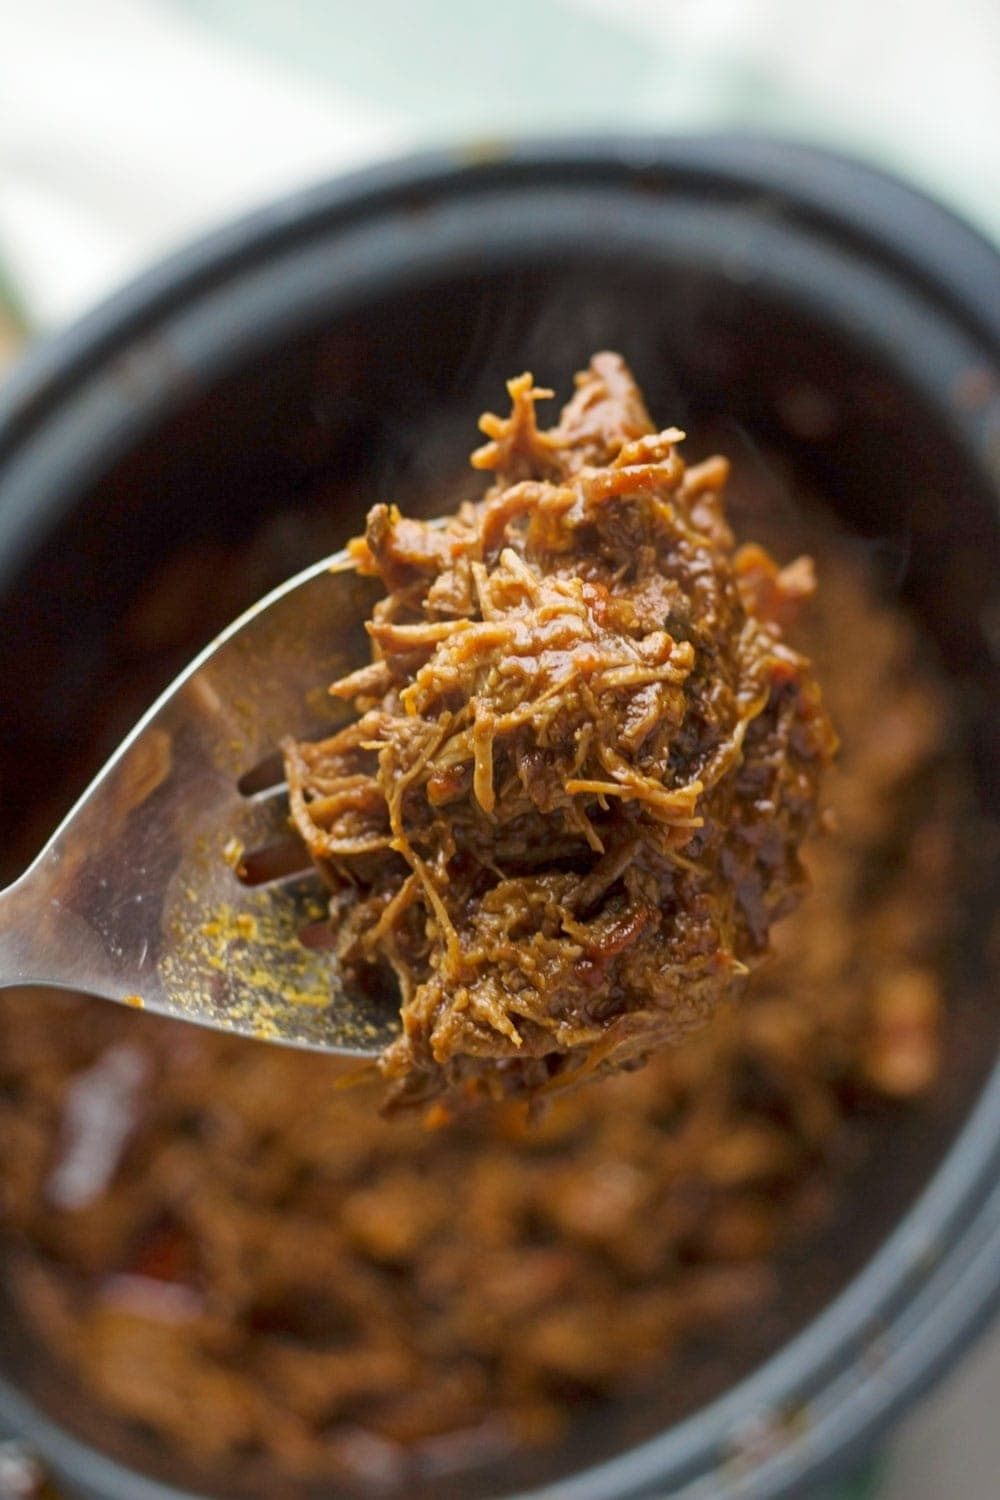 Beef brisket is slow cooked until meltingly tender for this spicy slow cooker pulled brisket. Serve in rolls or wraps for a delicious dinner!